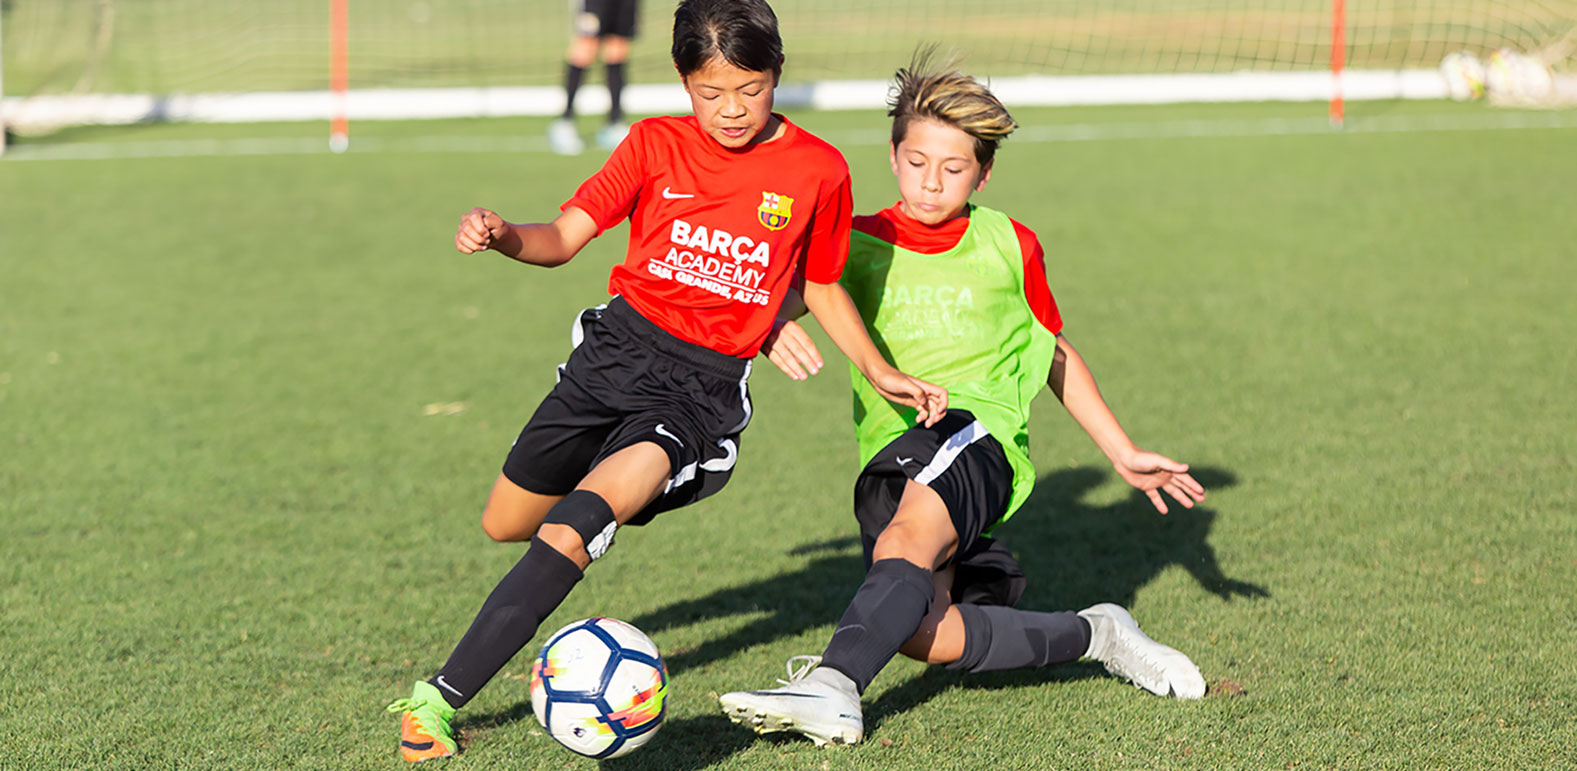 Boys and Girls Soccer Camp-Grades 3-8